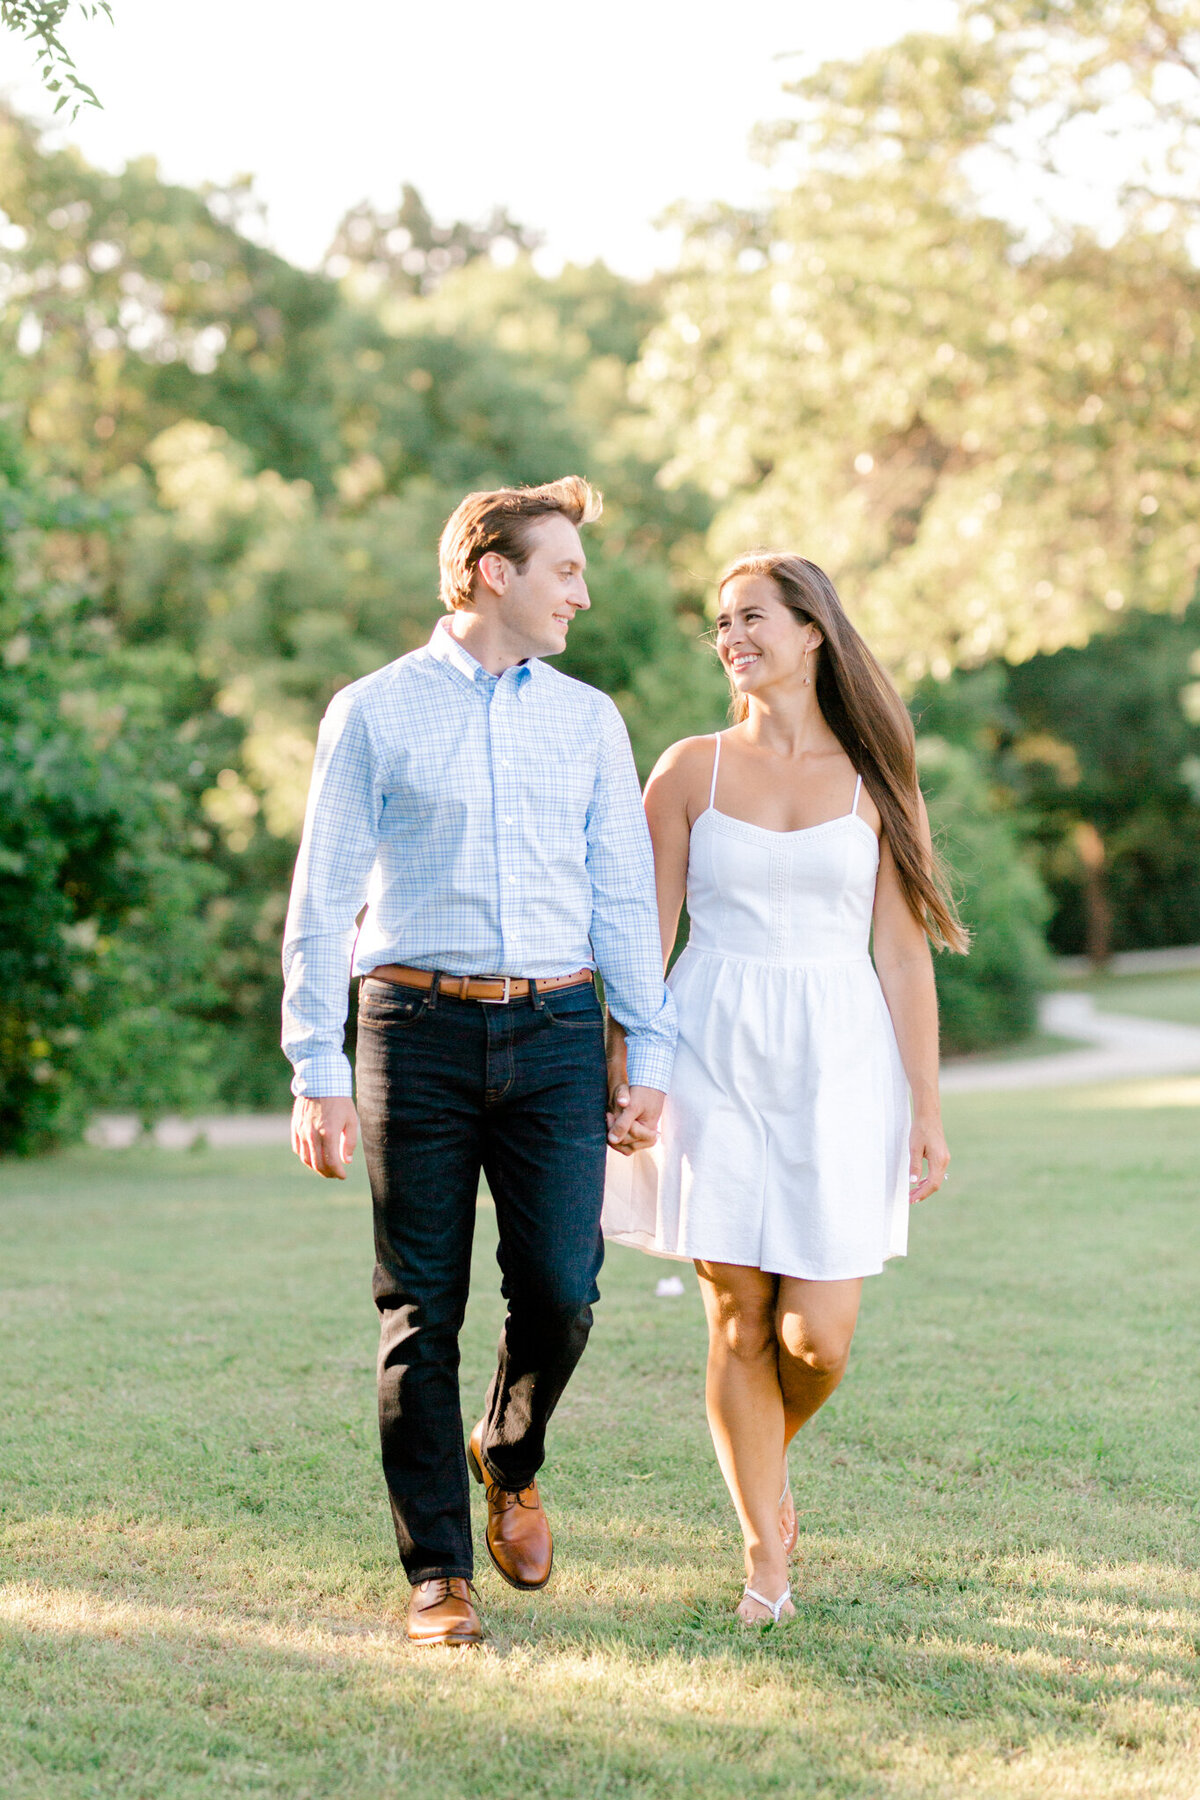 Christina & Steven Engagement Session at Prairie Creek Park in Richardson, Texas | DFW Wedding Photographer | Sami Kathryn Photography-5